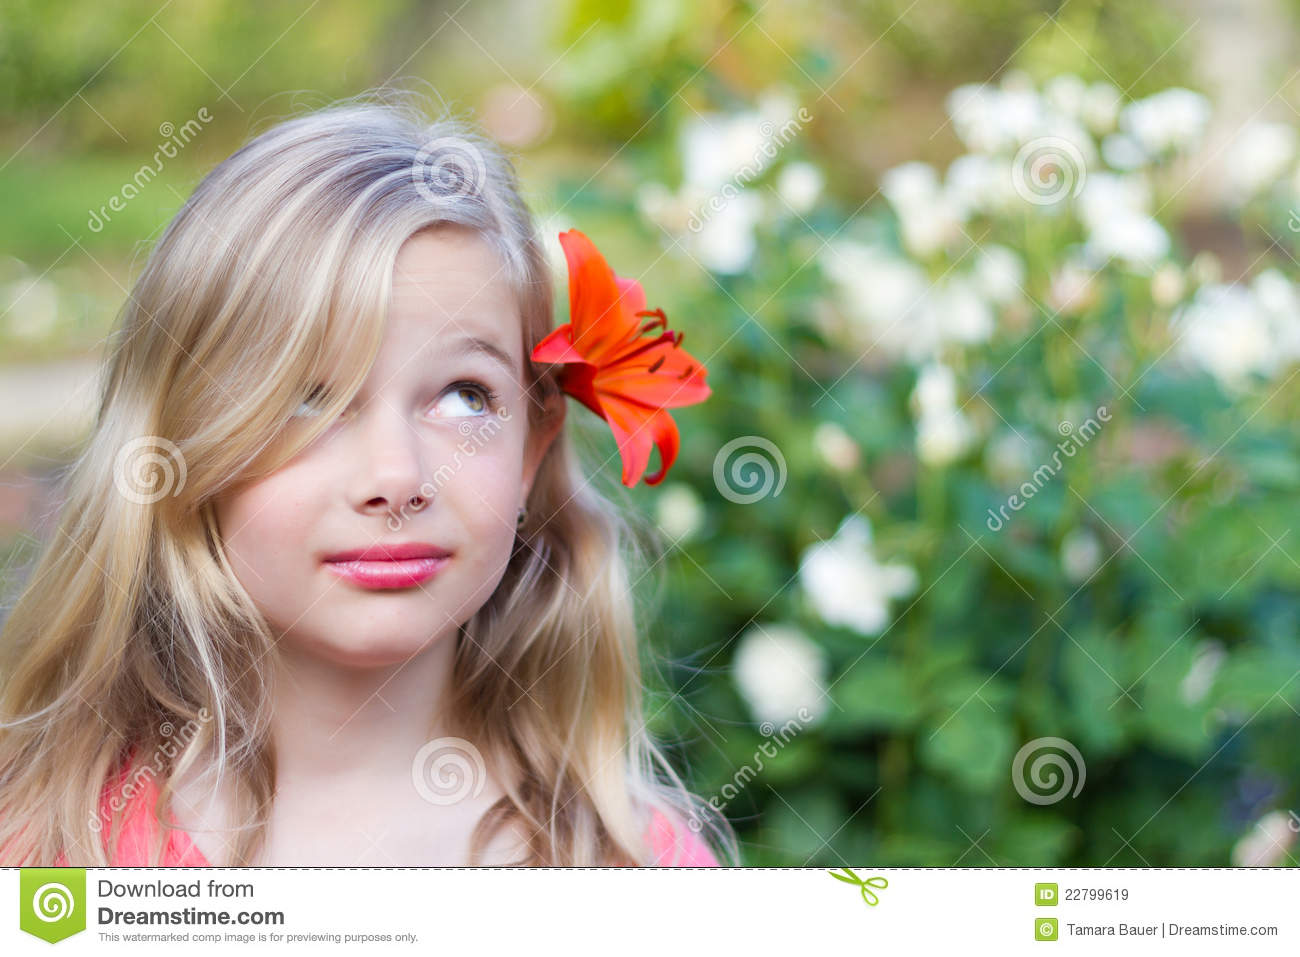 Girl With Flower In Hair Royalty Free Stock Image